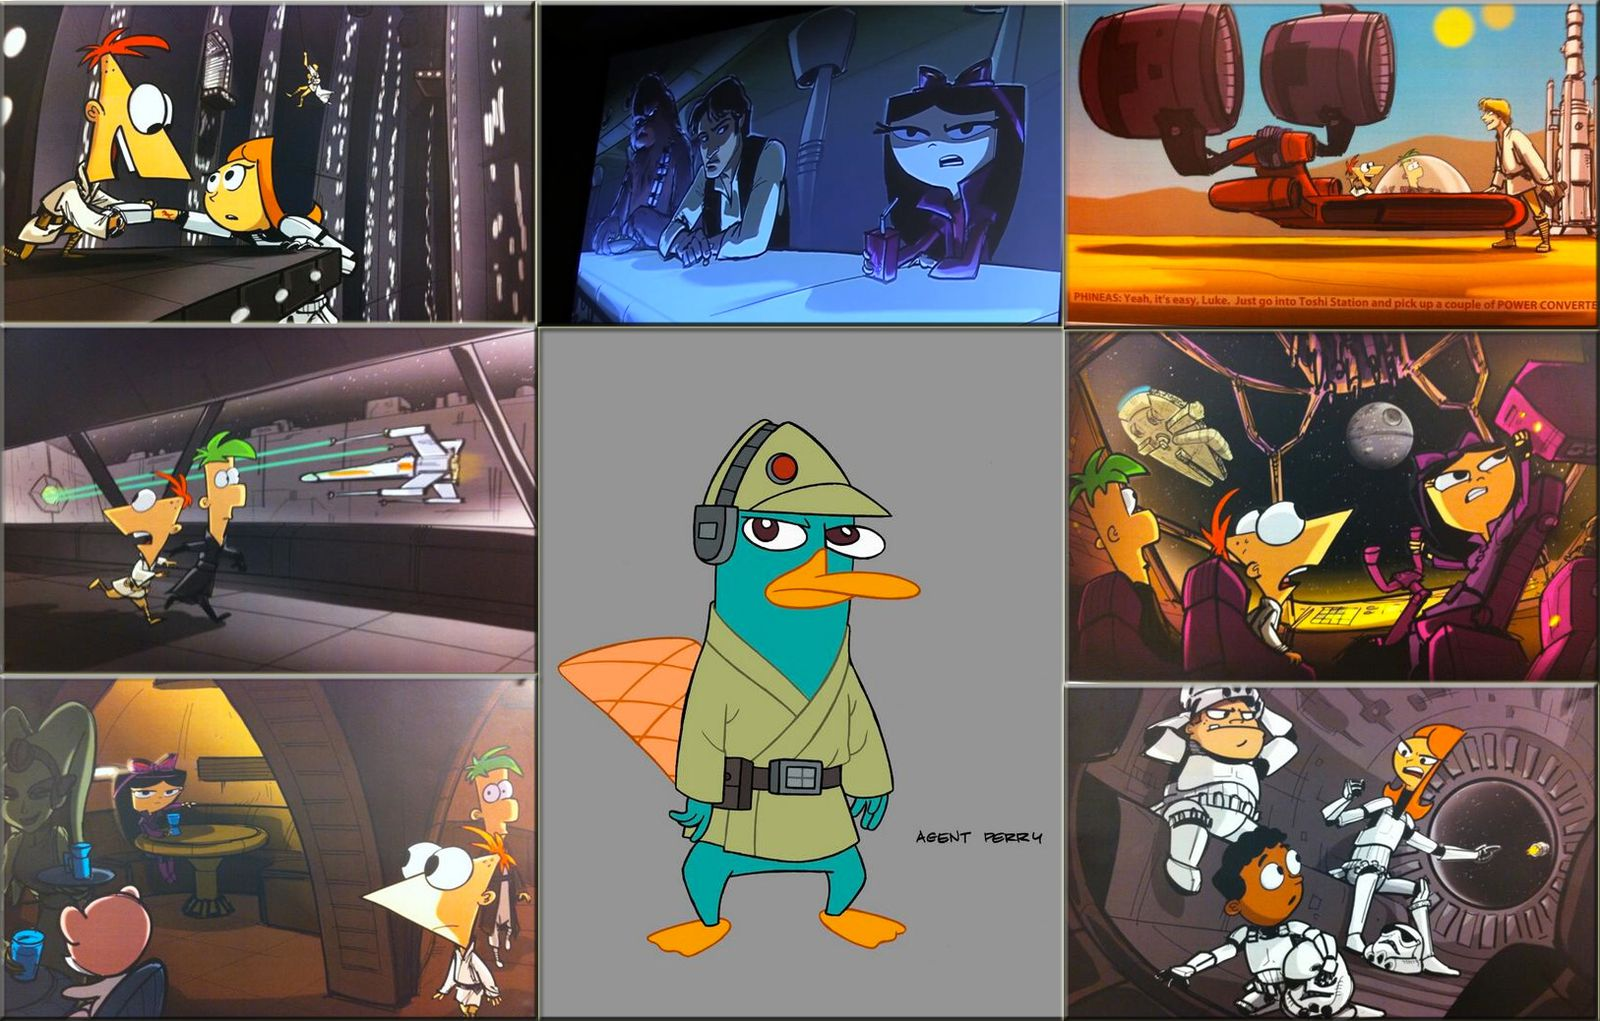 http://animationfascination.wordpress.com/2013/09/14/new-concept-art-for-the-upcoming-phineas-and-ferb-star-wars-special/